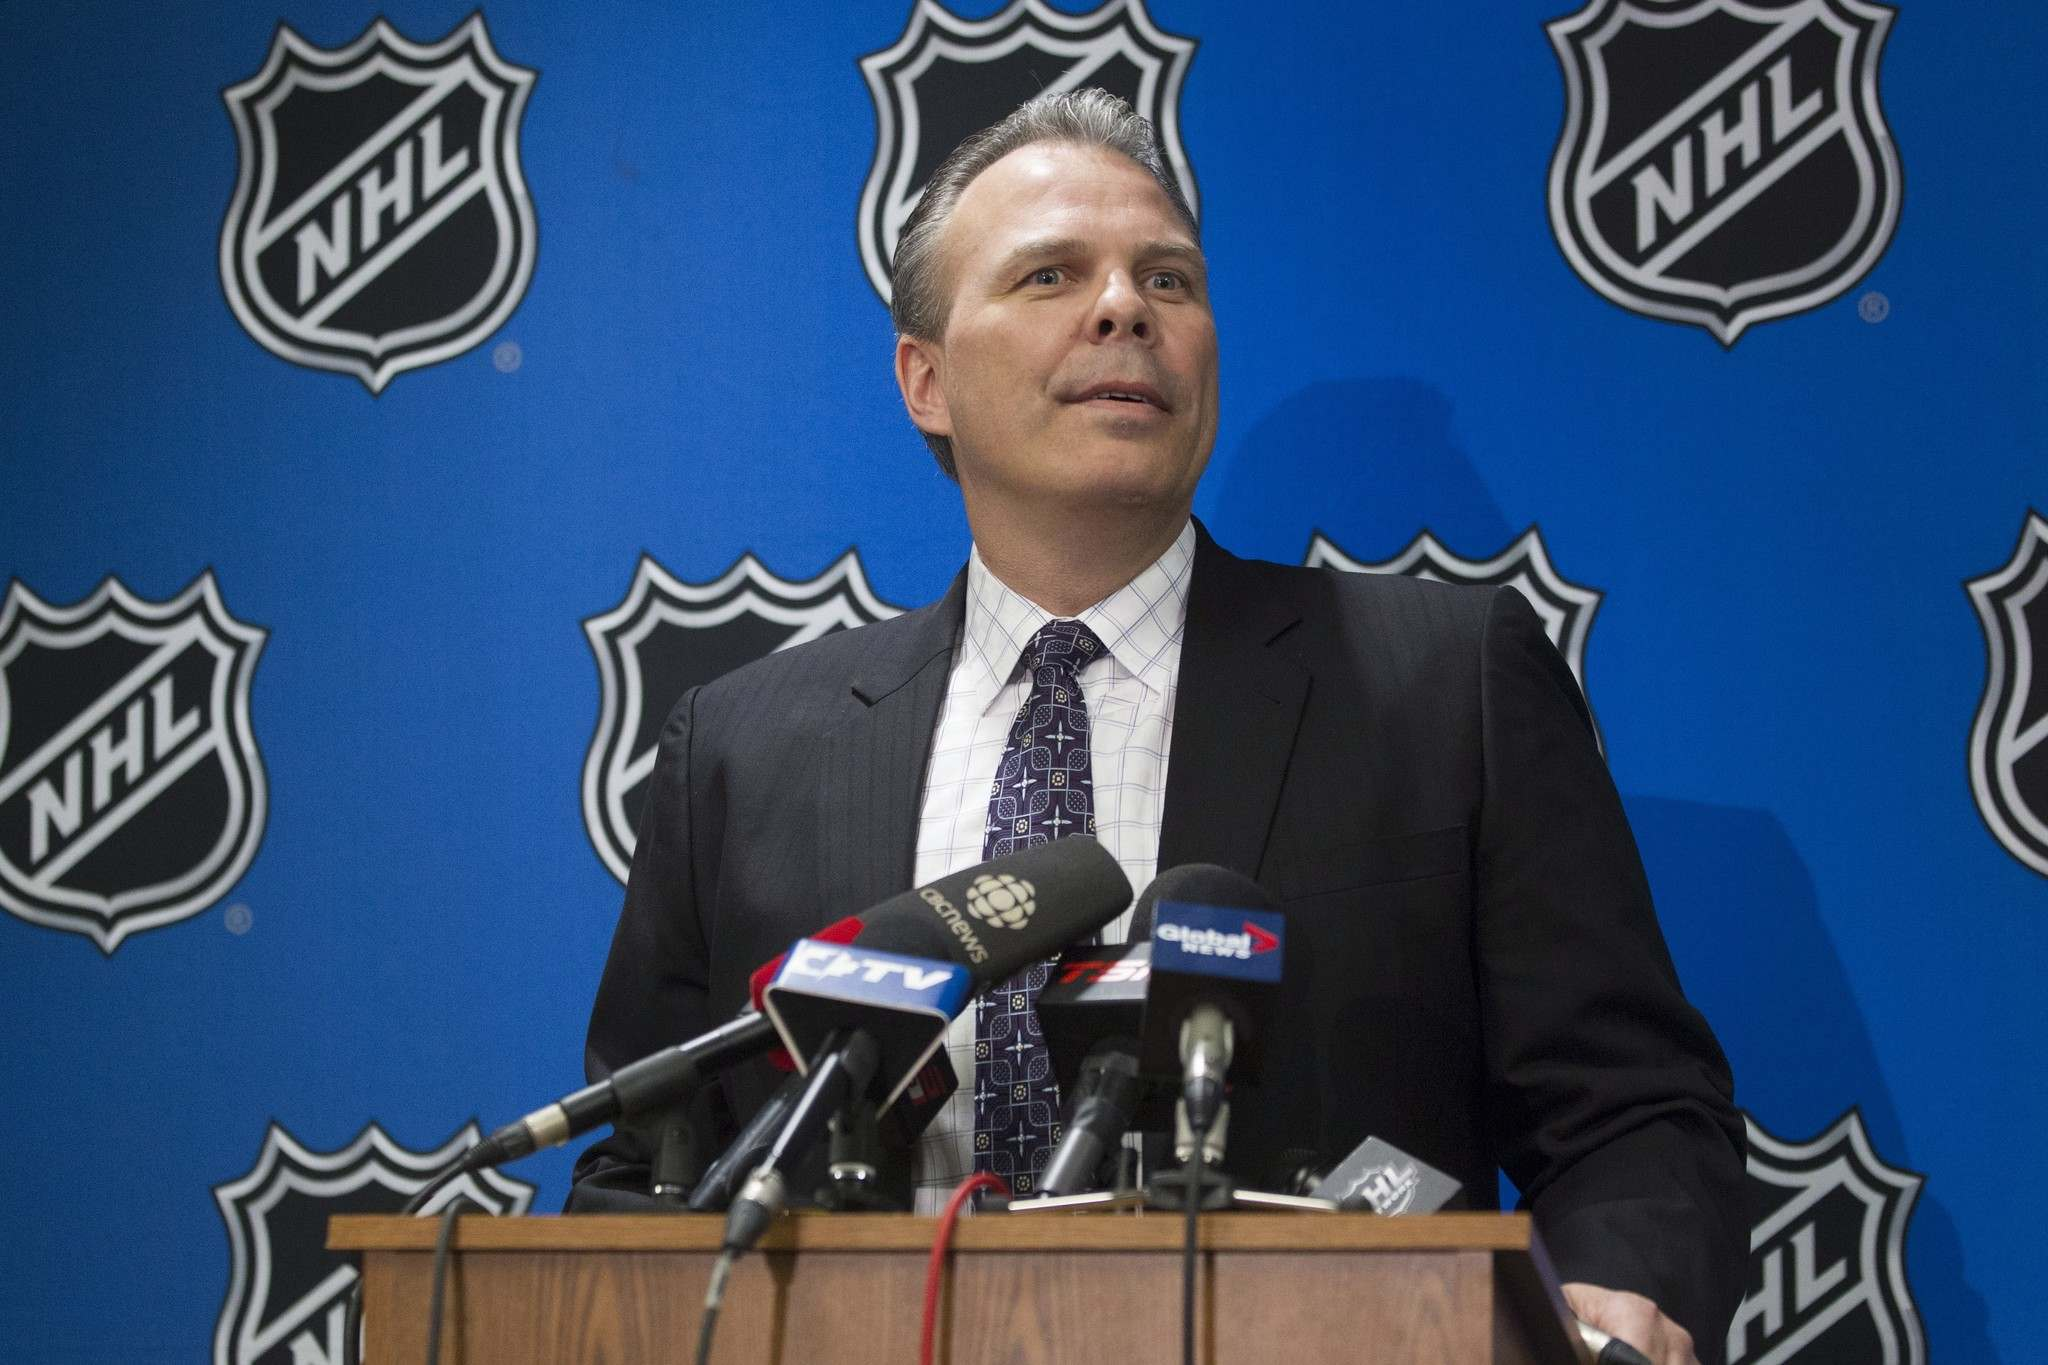 Chris Young / The Canadian Press</p><p>Kevin Cheveldayoff, general manager of Winnipeg Jets, speaks to the media after winning the second selection of the 2016 NHL Draft Lottery in Toronto on Saturday.</p>